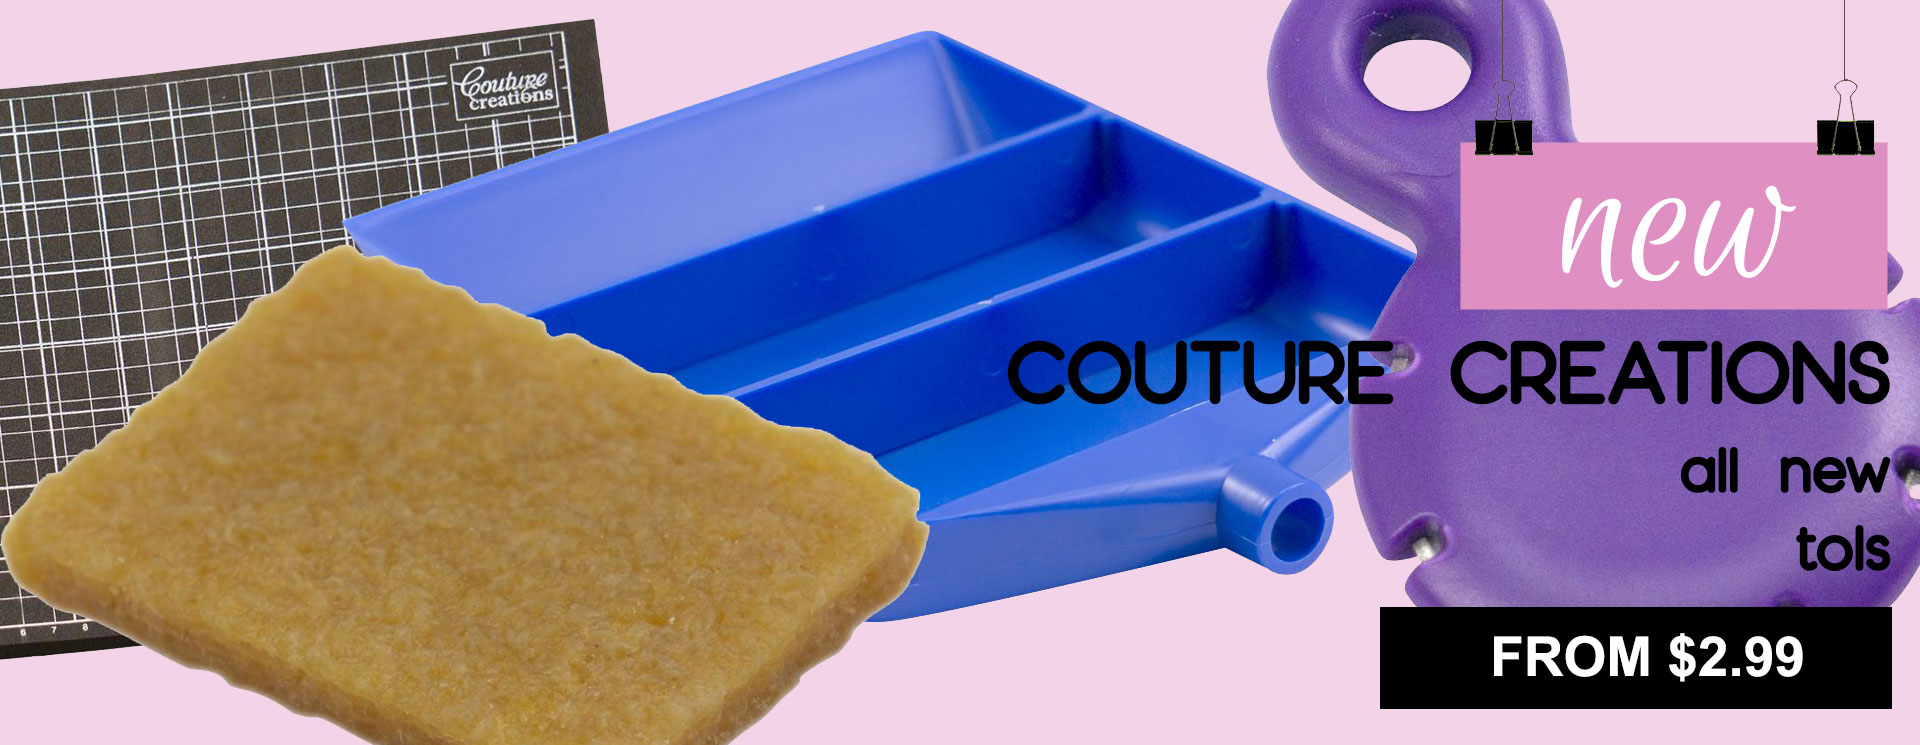 Couture Creations All New tools